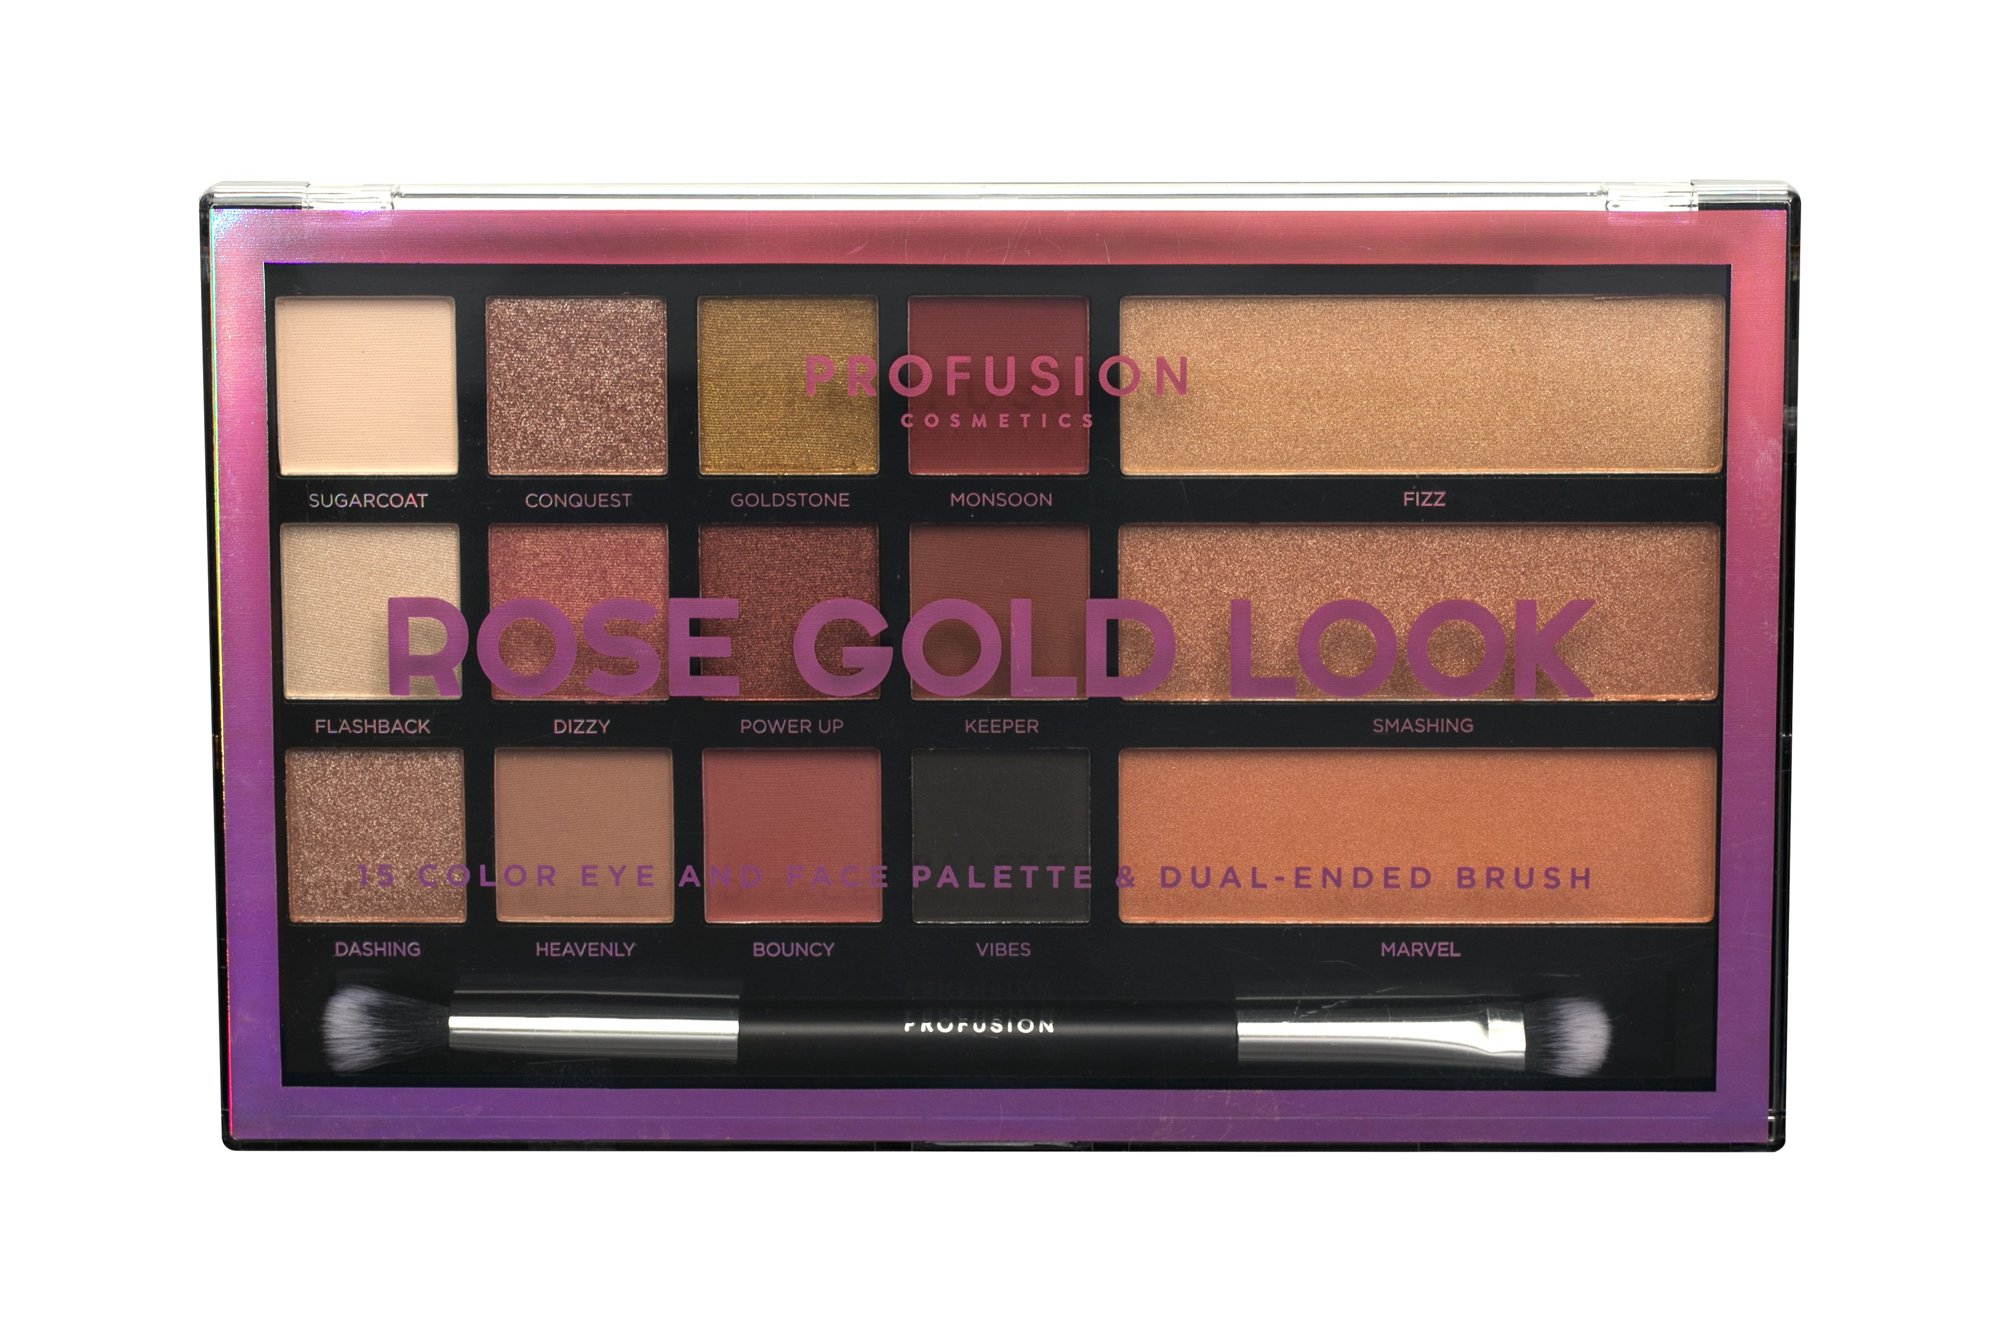 Profusion Rose Gold Look Makeup Palette 33,6ml